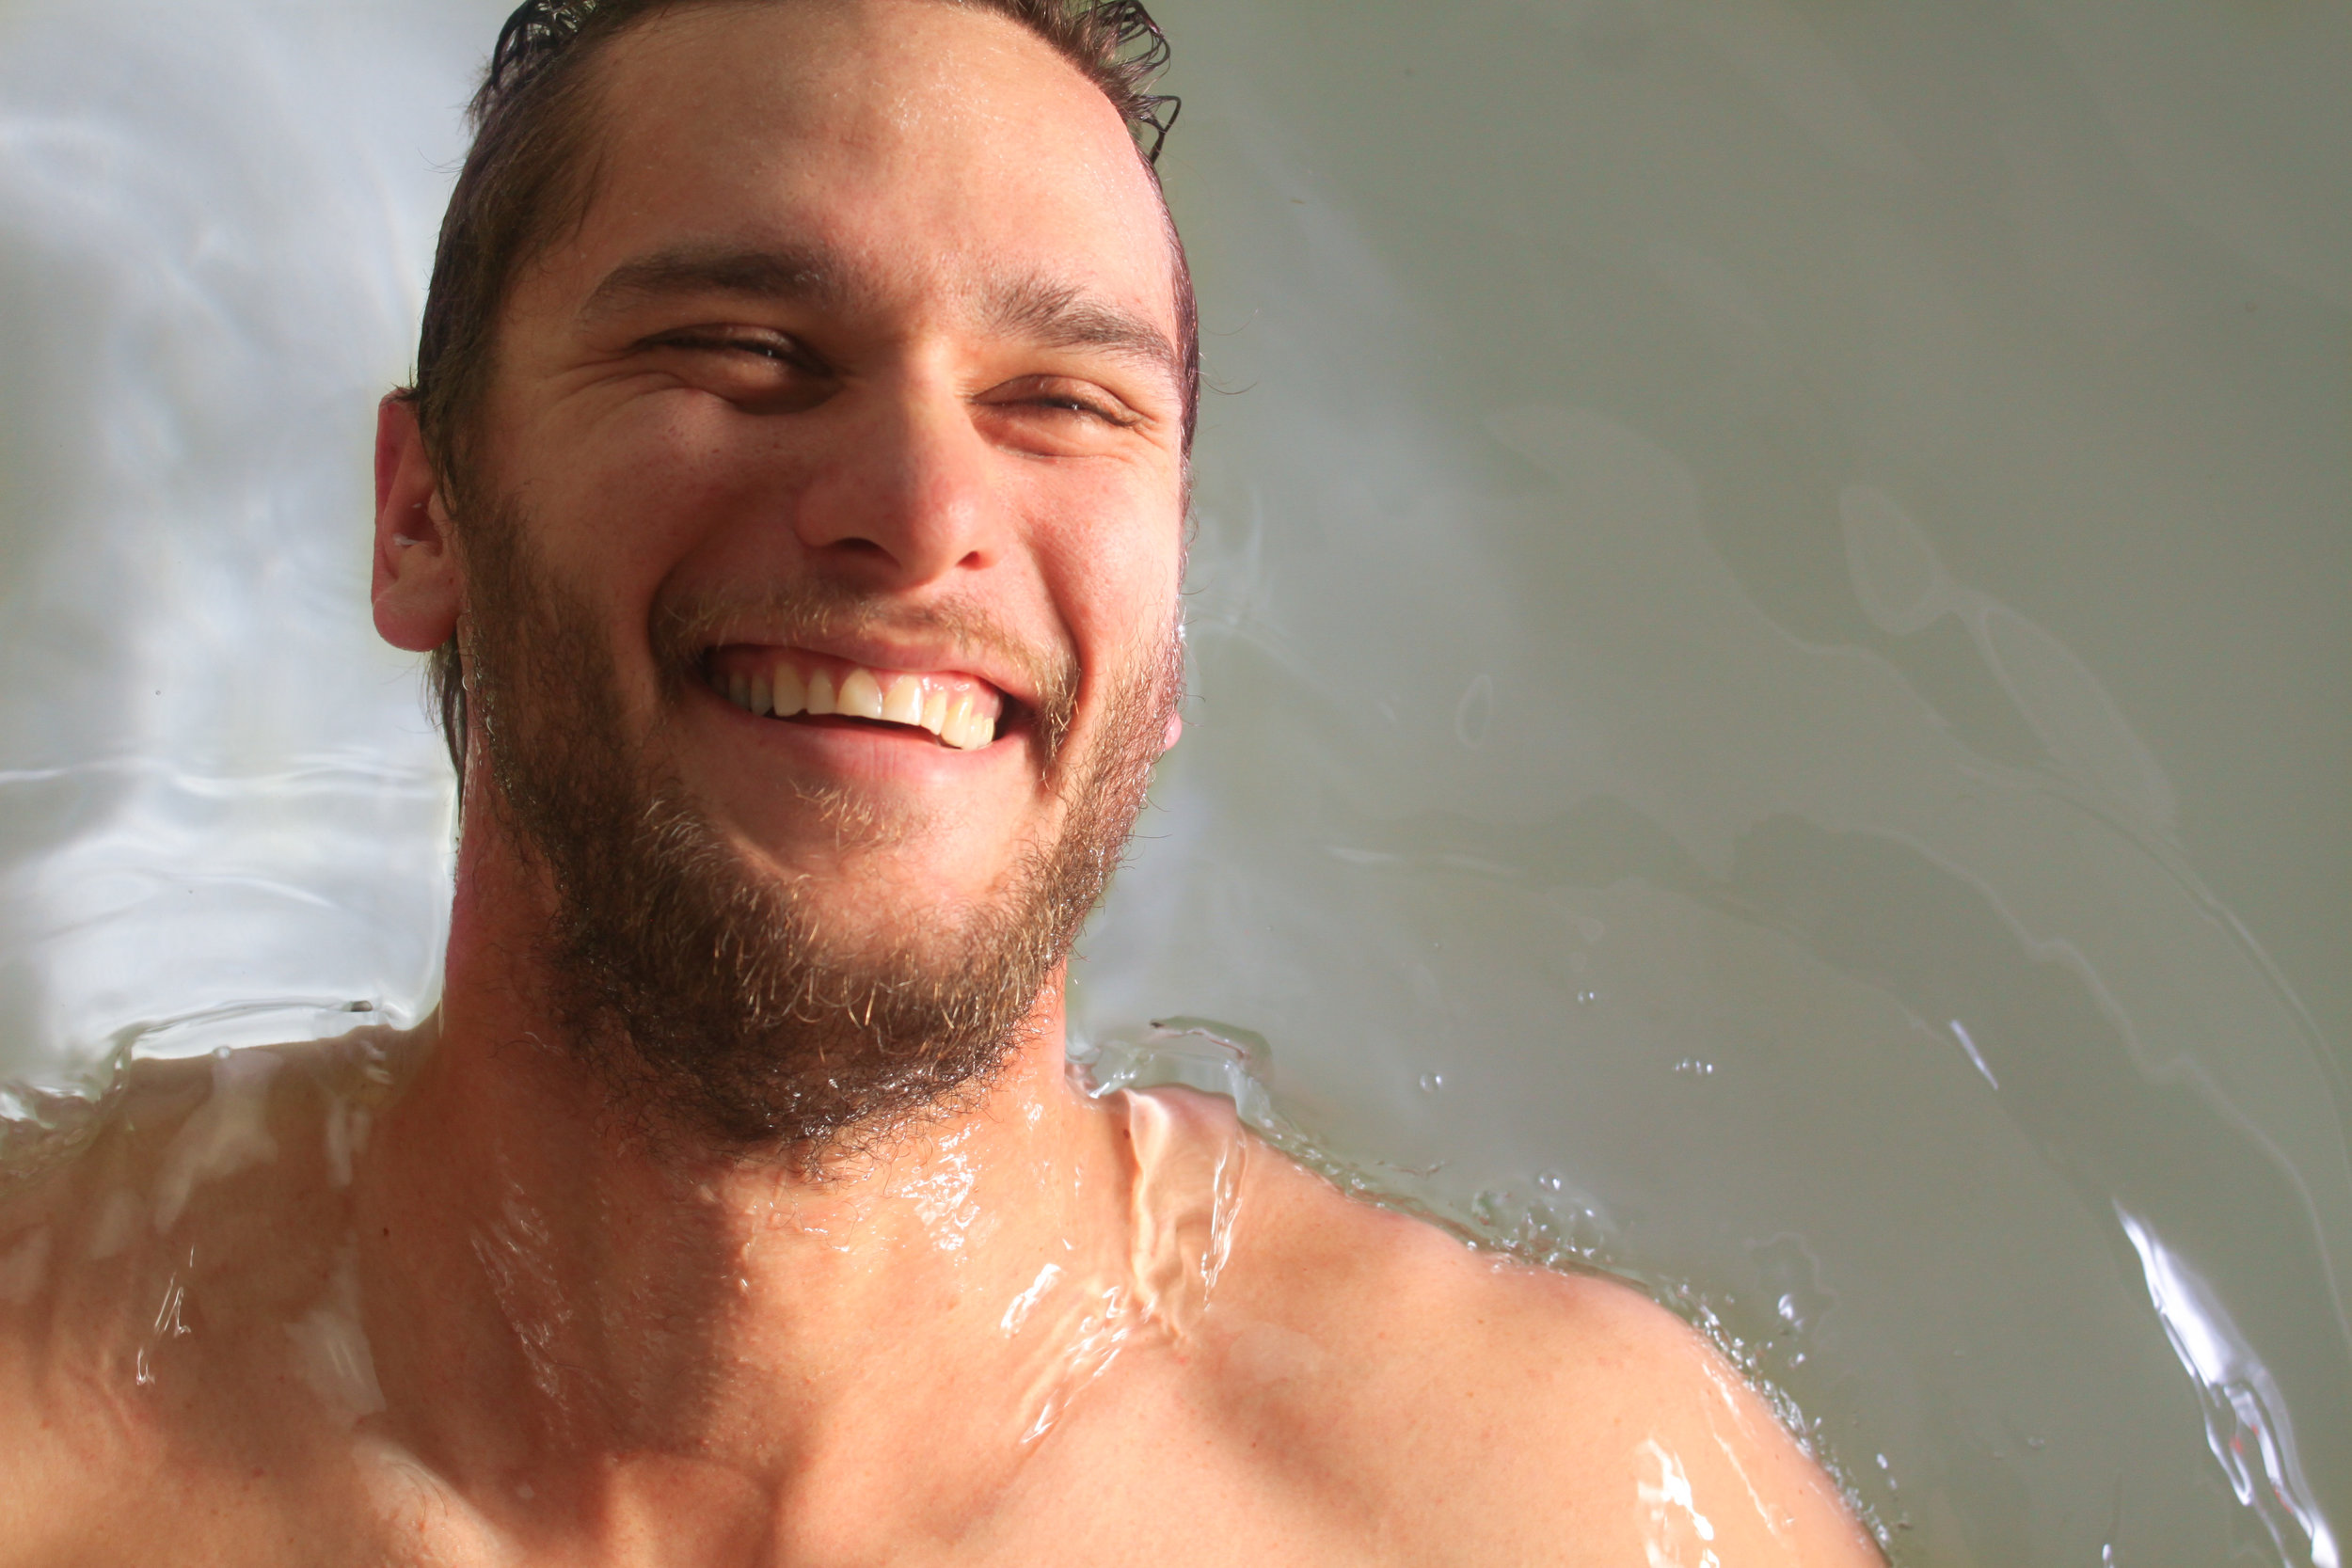 Guy Smiling While Floating in Water